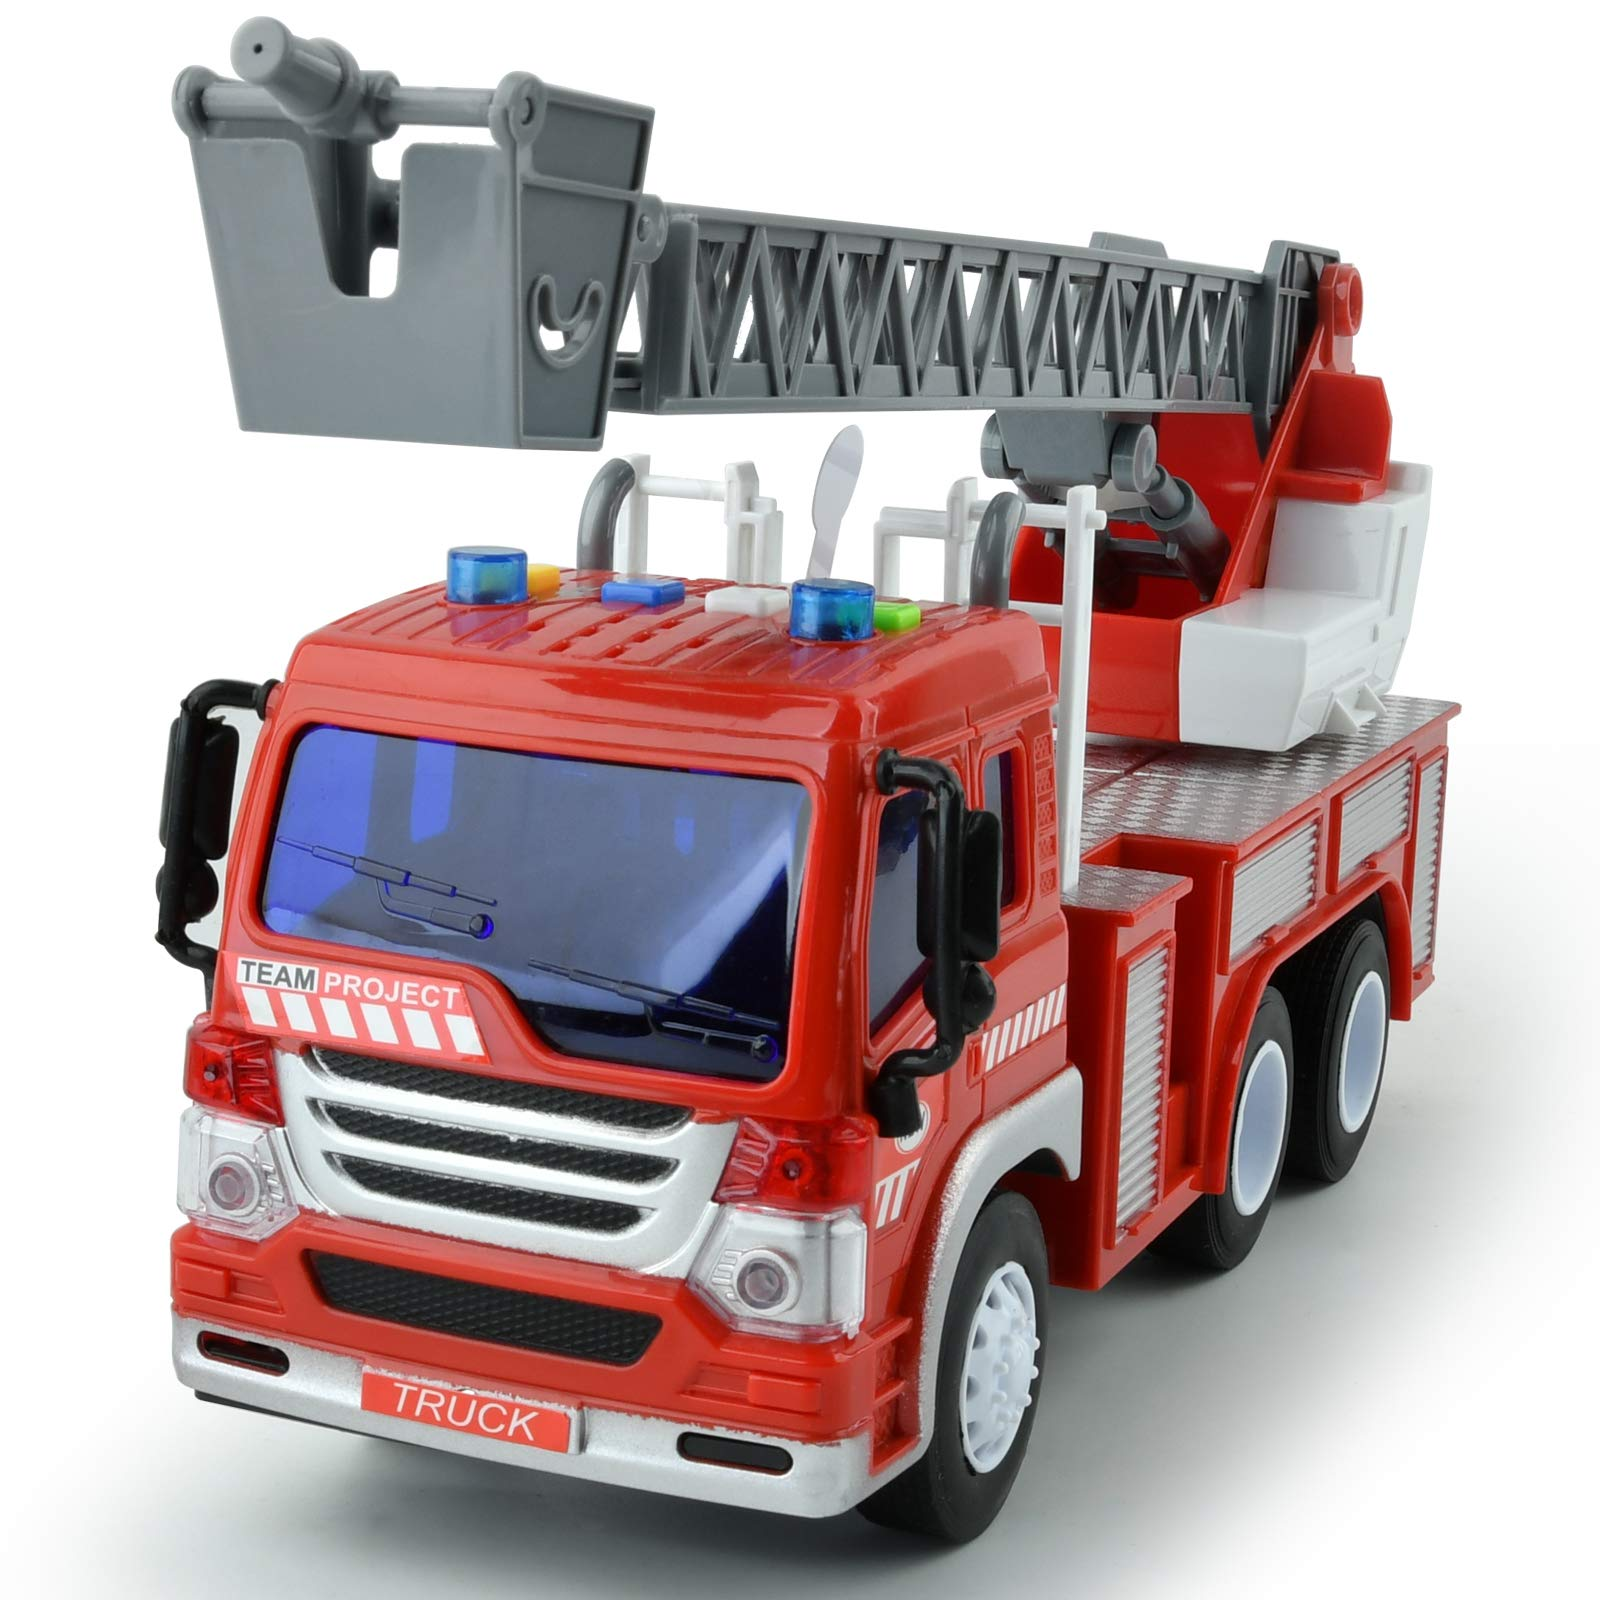 GizmoVine Toys for 2 Years Old Boys, Fire Engine Truck Friction Powered Fire Engine Toy, Inertial Vehicles Toy Cars for Toddlers & Kids